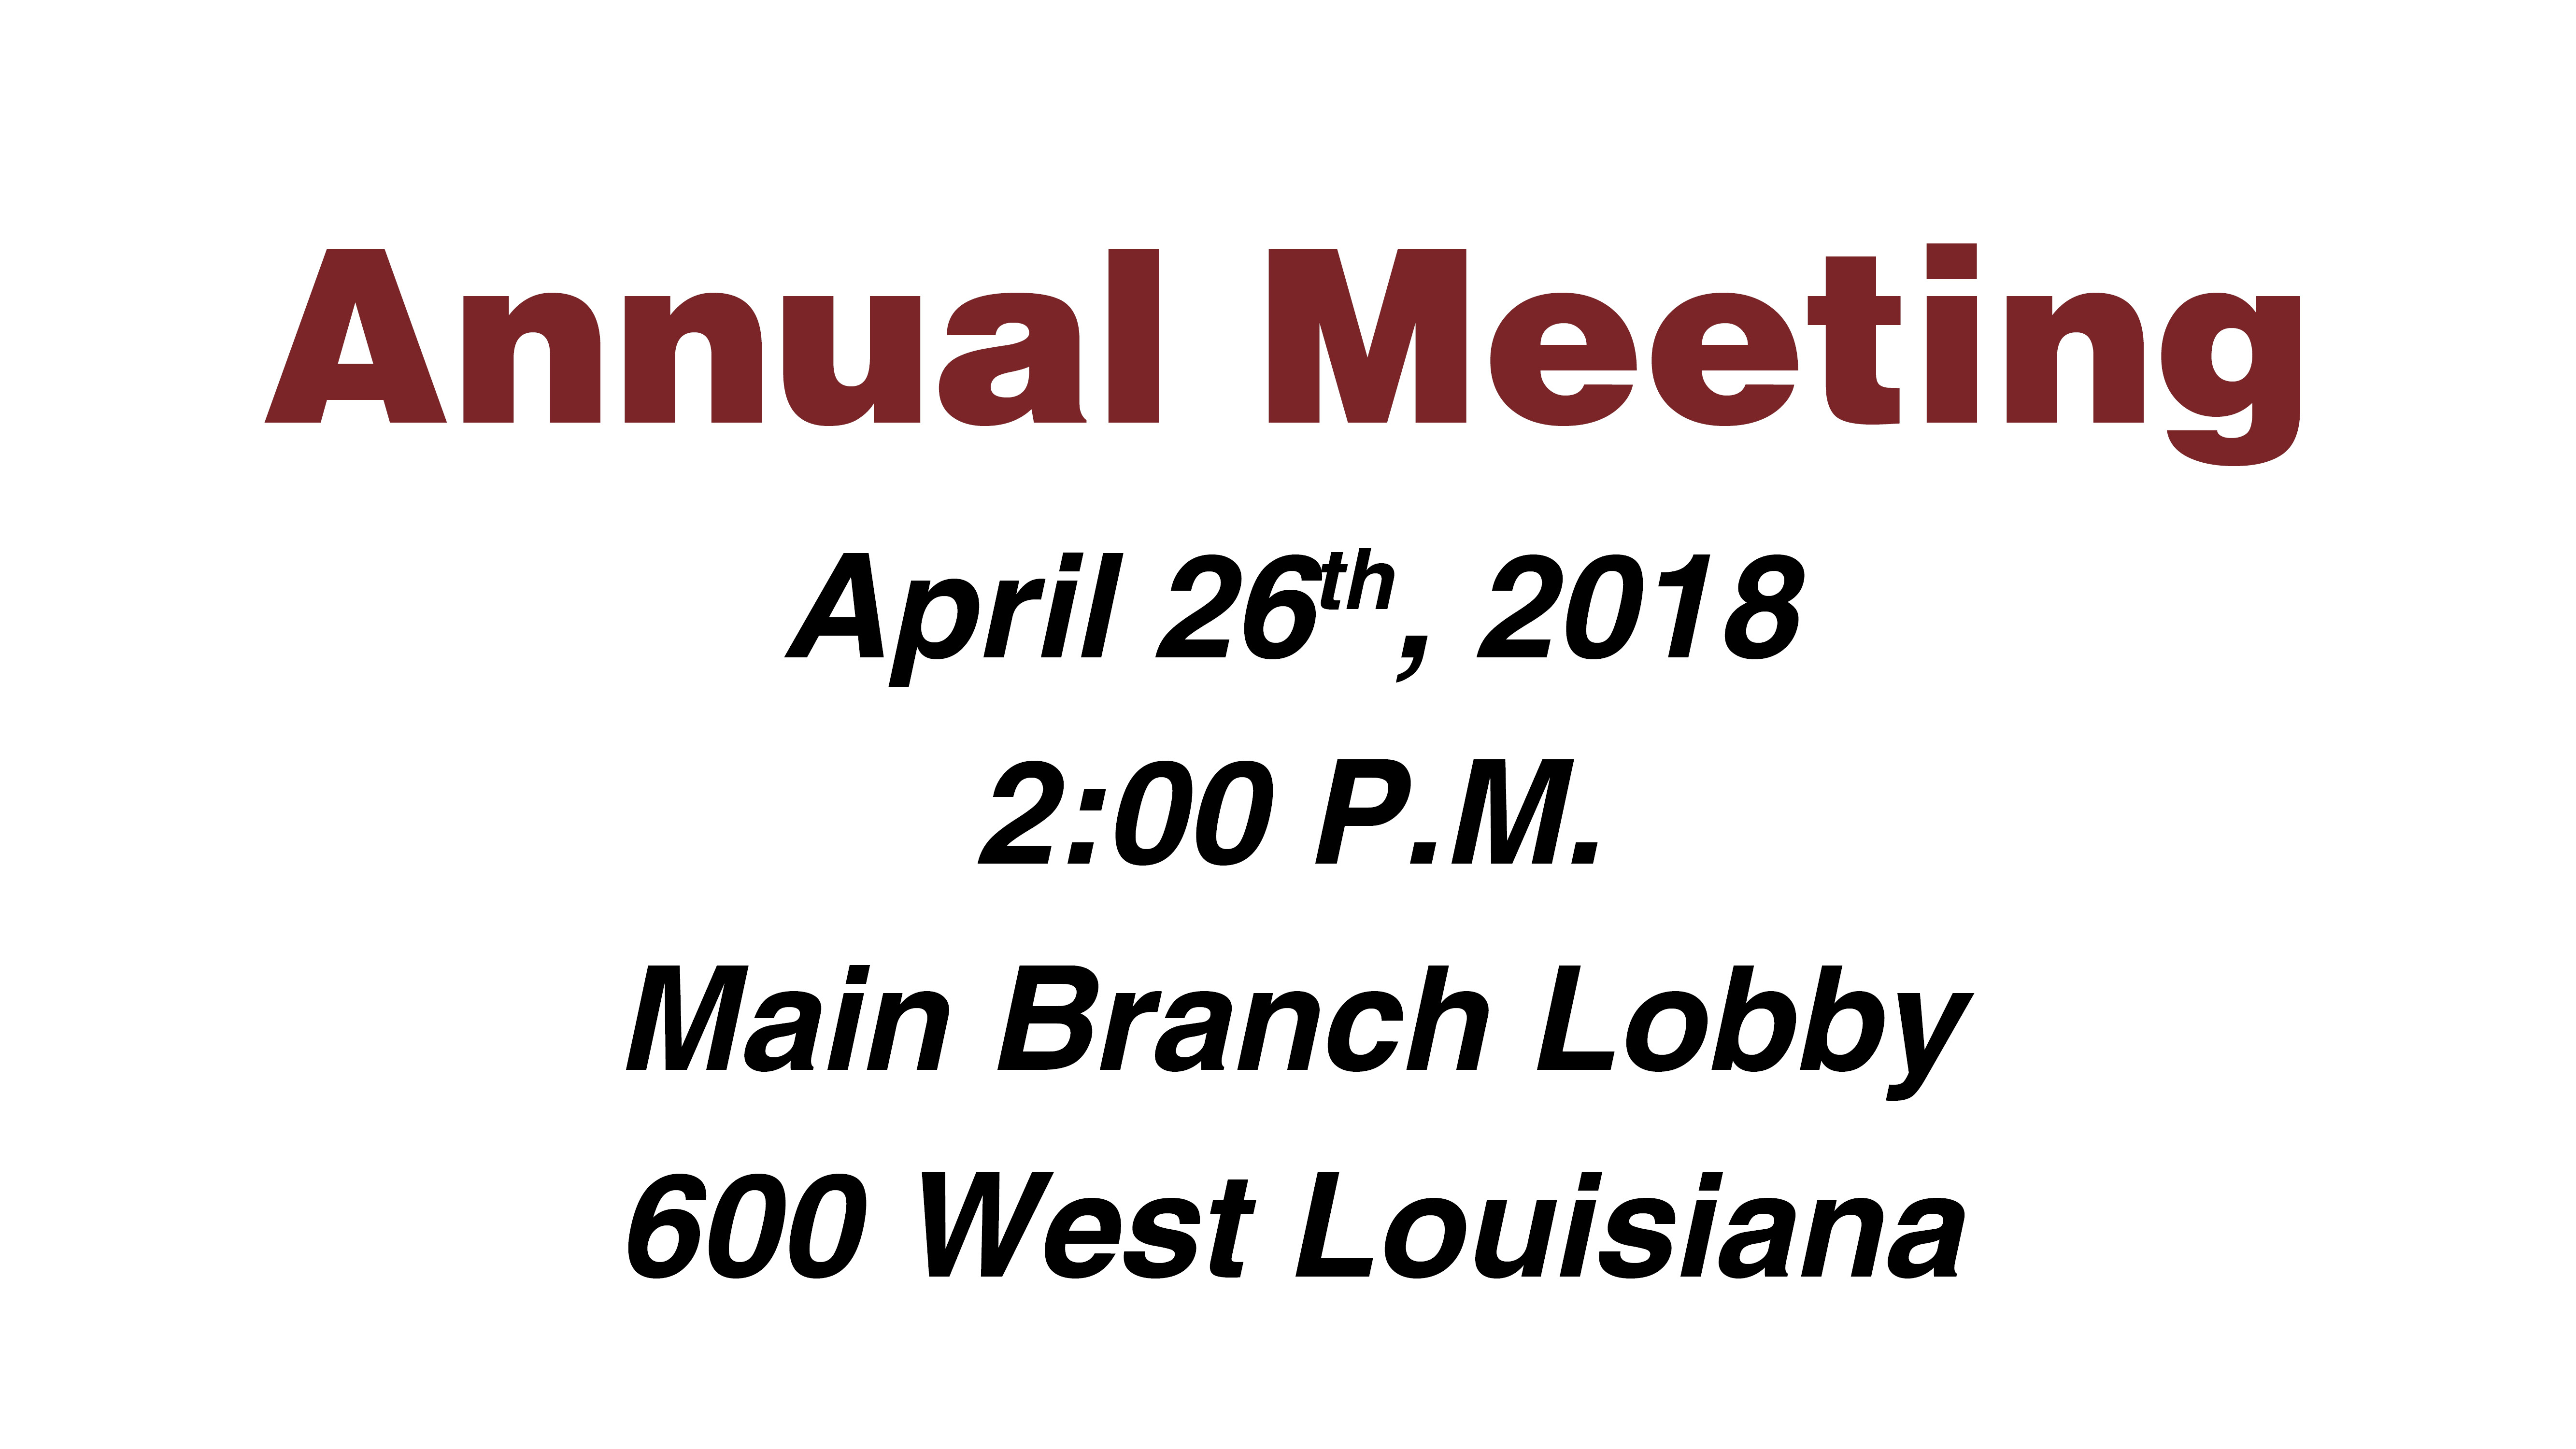 Annual Meeting Info